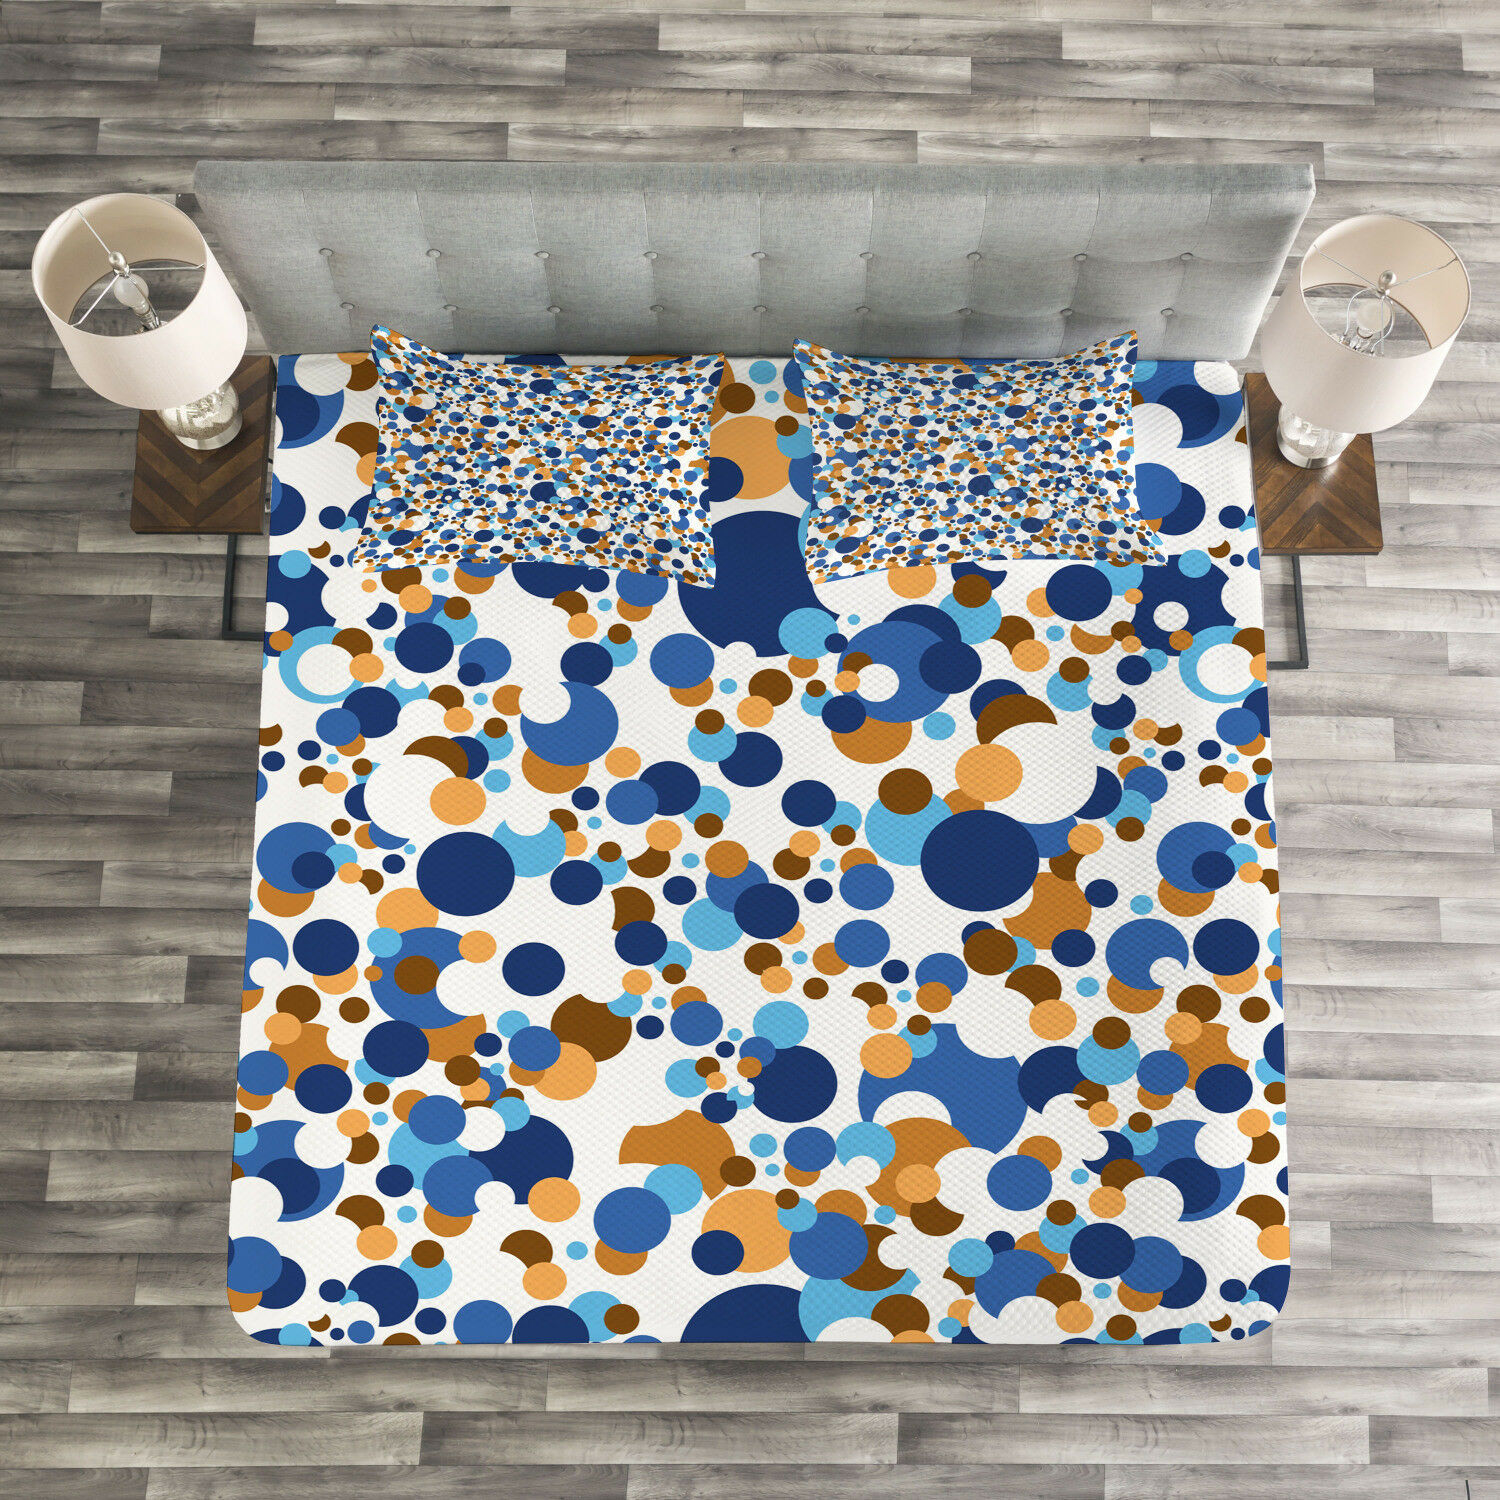 Abstract Quilted Bedspread & Pillow Shams Set, Bubble Retro Festive Print